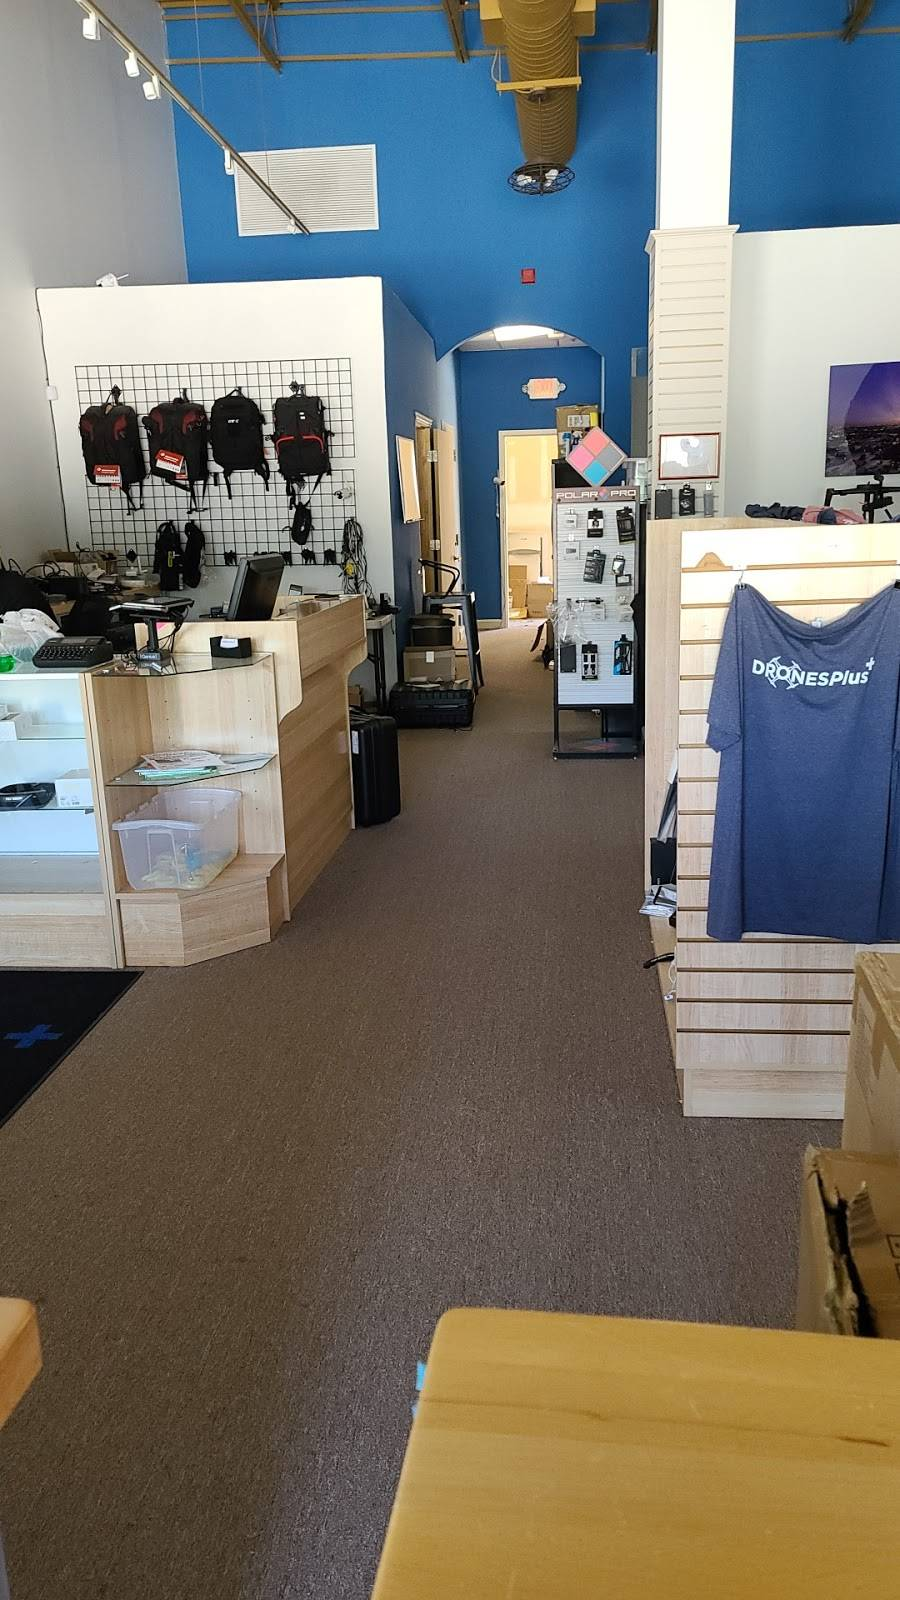 Drones Plus - electronics store  | Photo 4 of 6 | Address: 8549 Gaylord Pkwy #105, Frisco, TX 75034, USA | Phone: (469) 757-4497